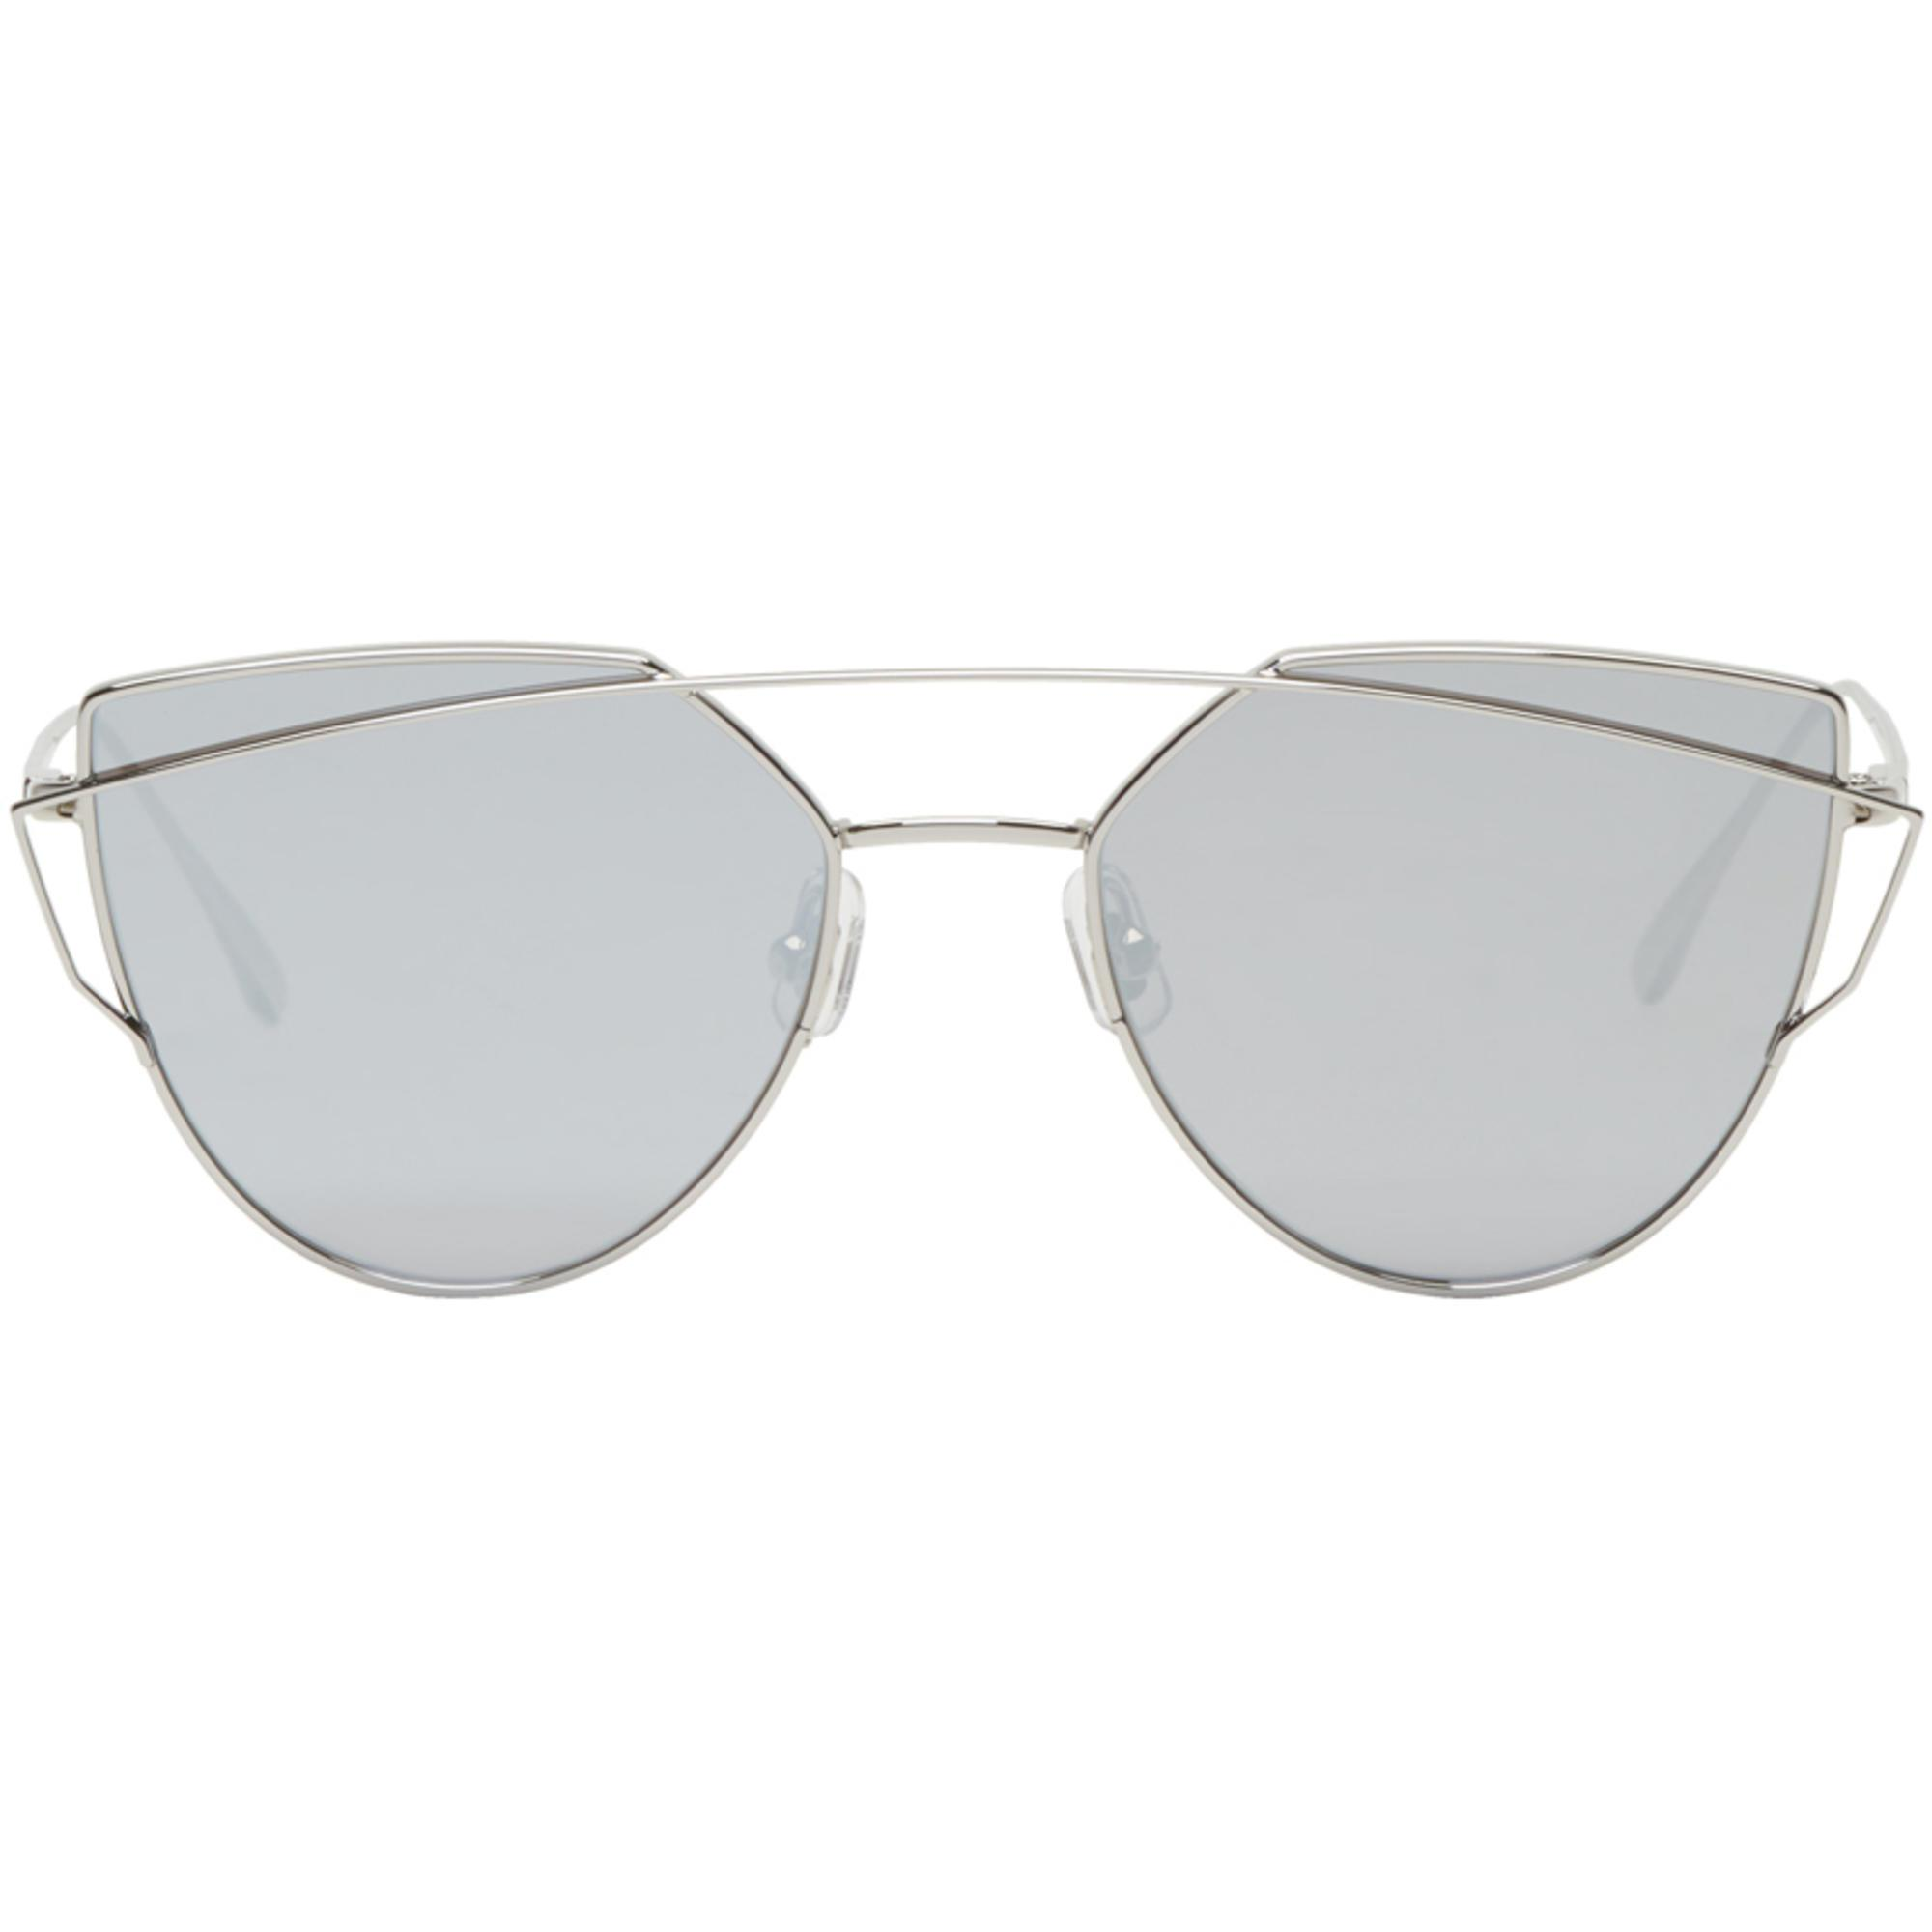 3e7a2f1cacd Gentle Monster Silver Love Punch Sunglasses in Metallic - Lyst